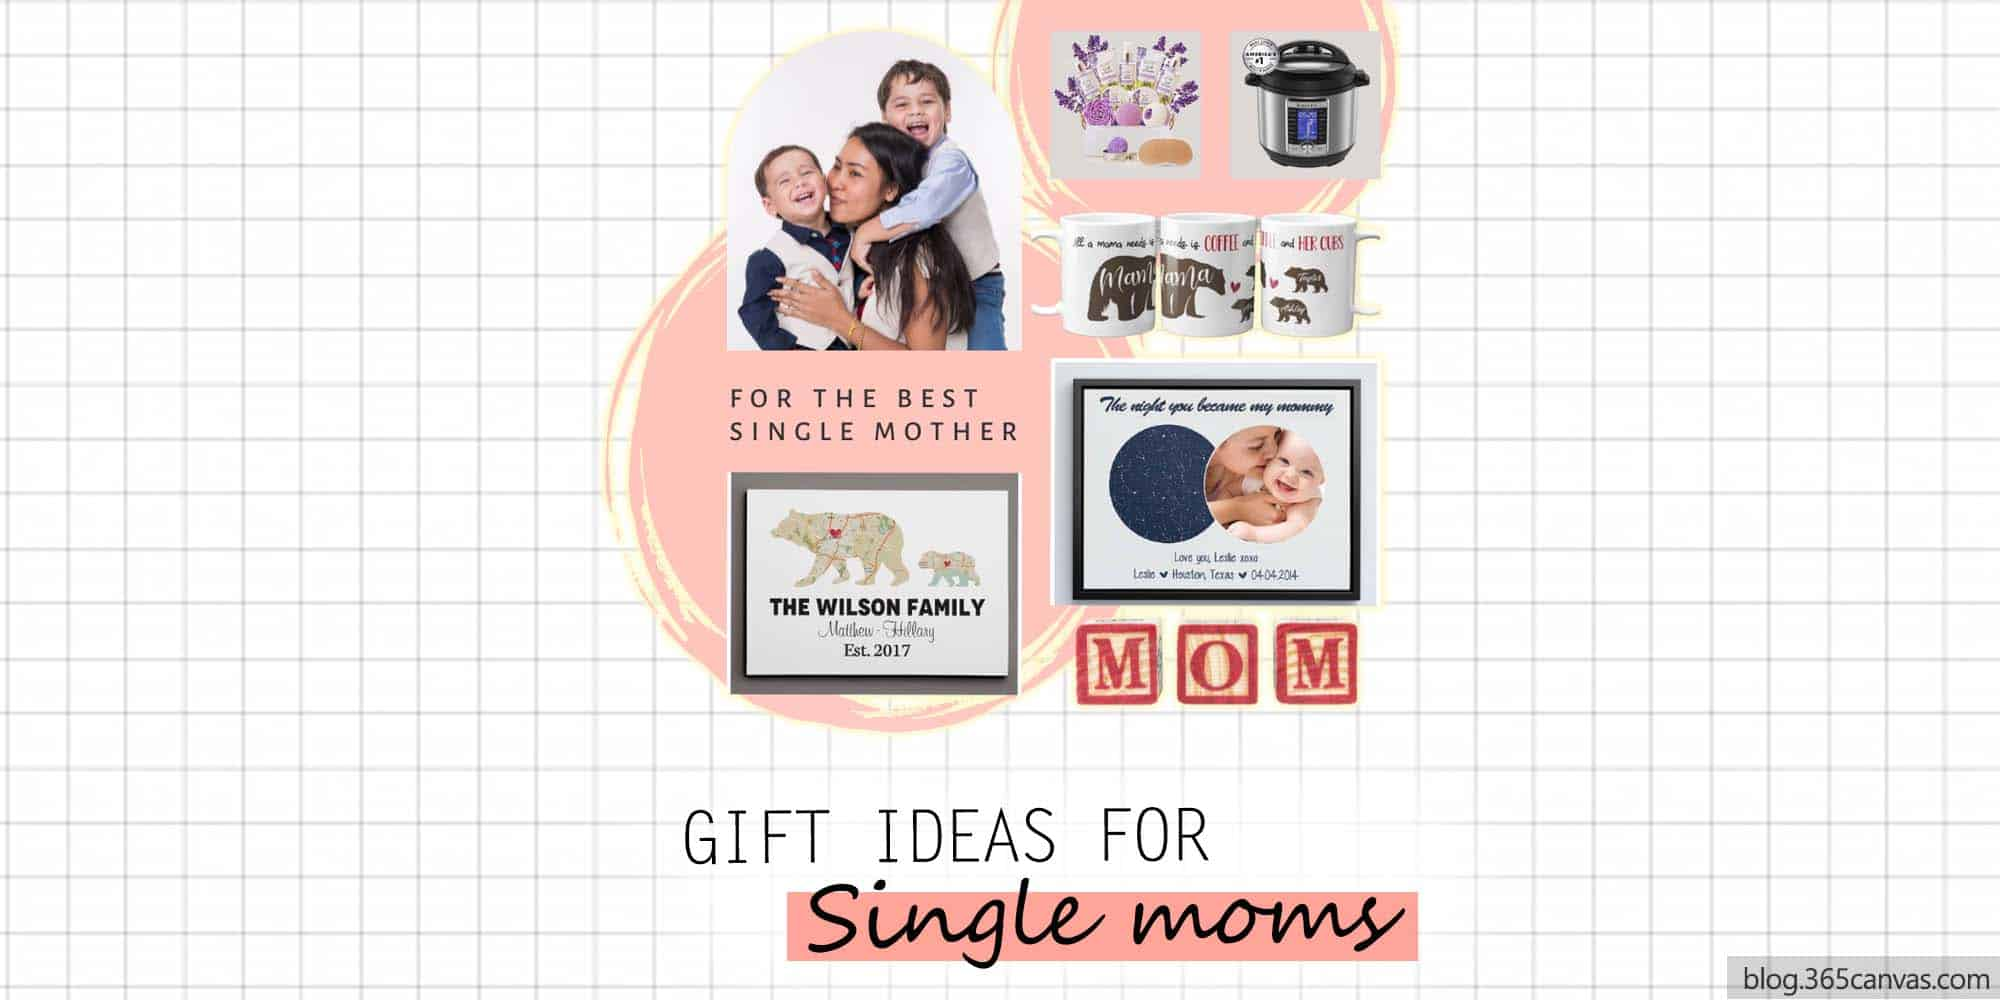 26 Best Gifts for Single Moms She's Sure to Love (2021)